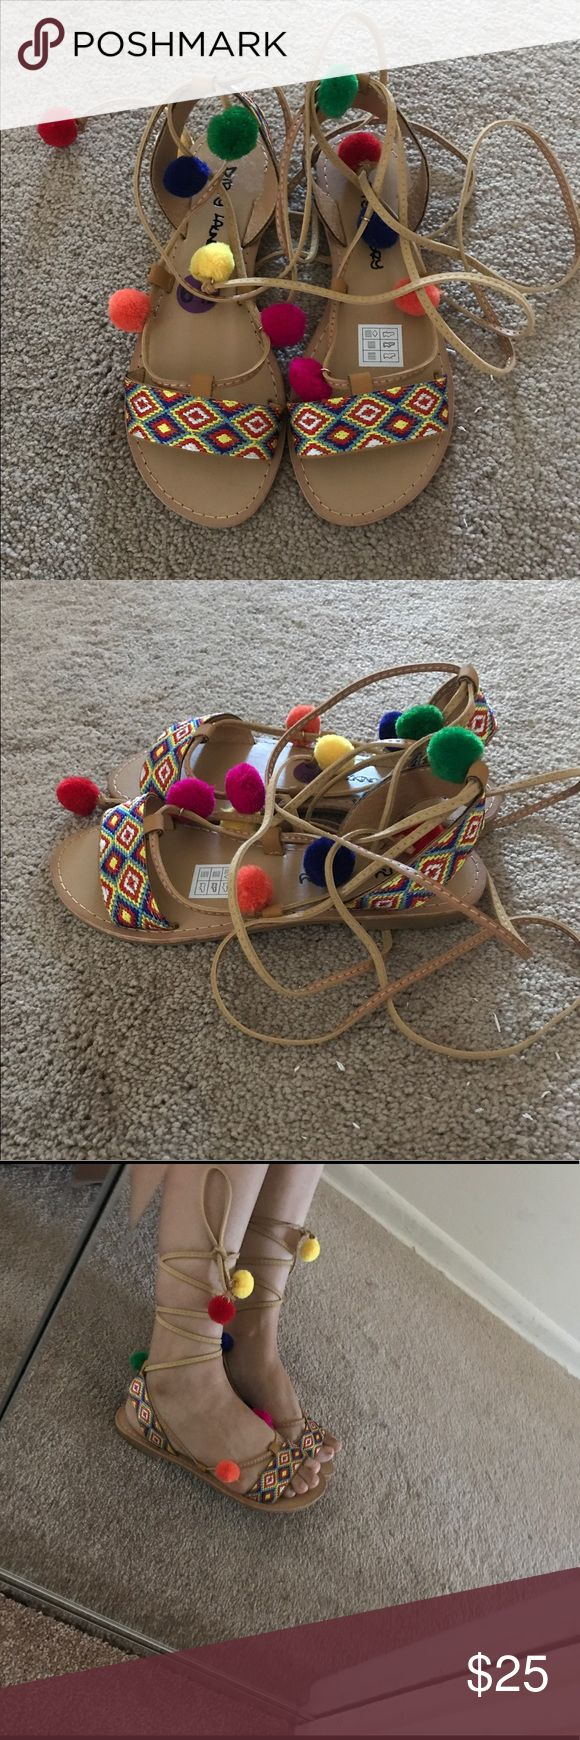 Women's multicolor decorated lace up sandals New without original tags. No damage or no defects and never worn. Comes from a smoke free and pet free home. Fast shipping! dirty laundry Shoes Sandals